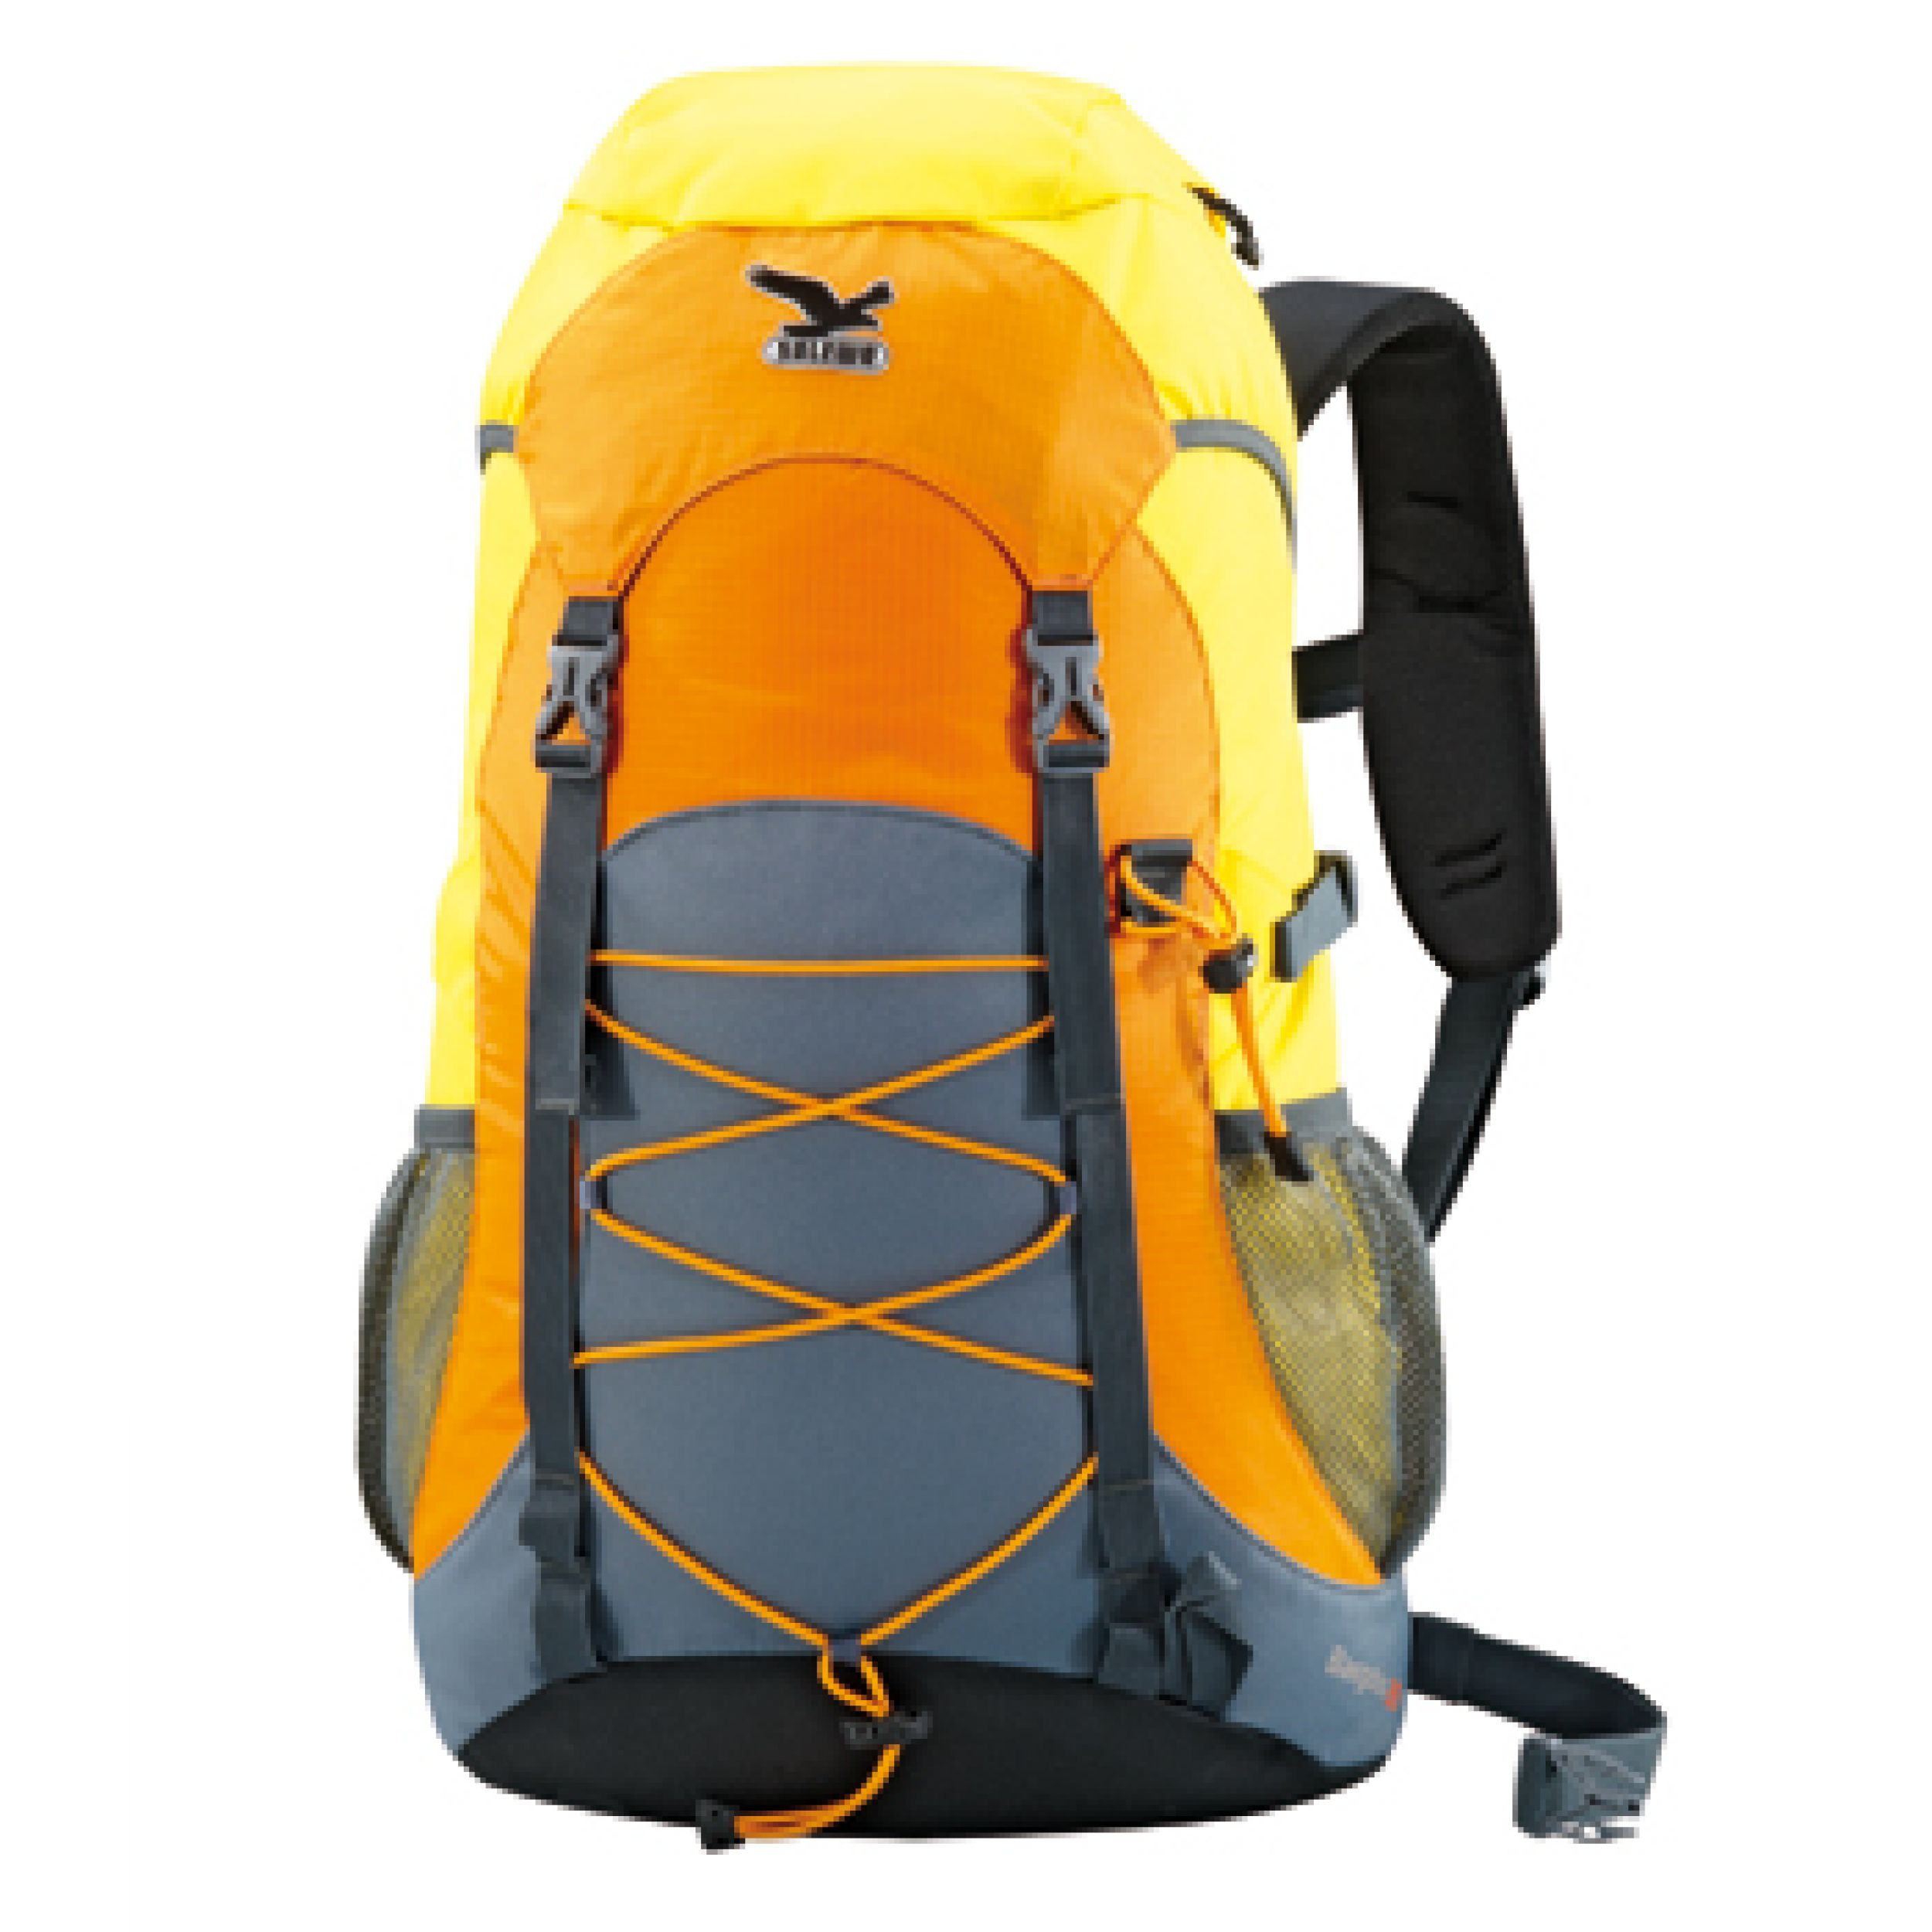 Q5401_Salewa_Backback_Baegdoo_yellow-image.jpg